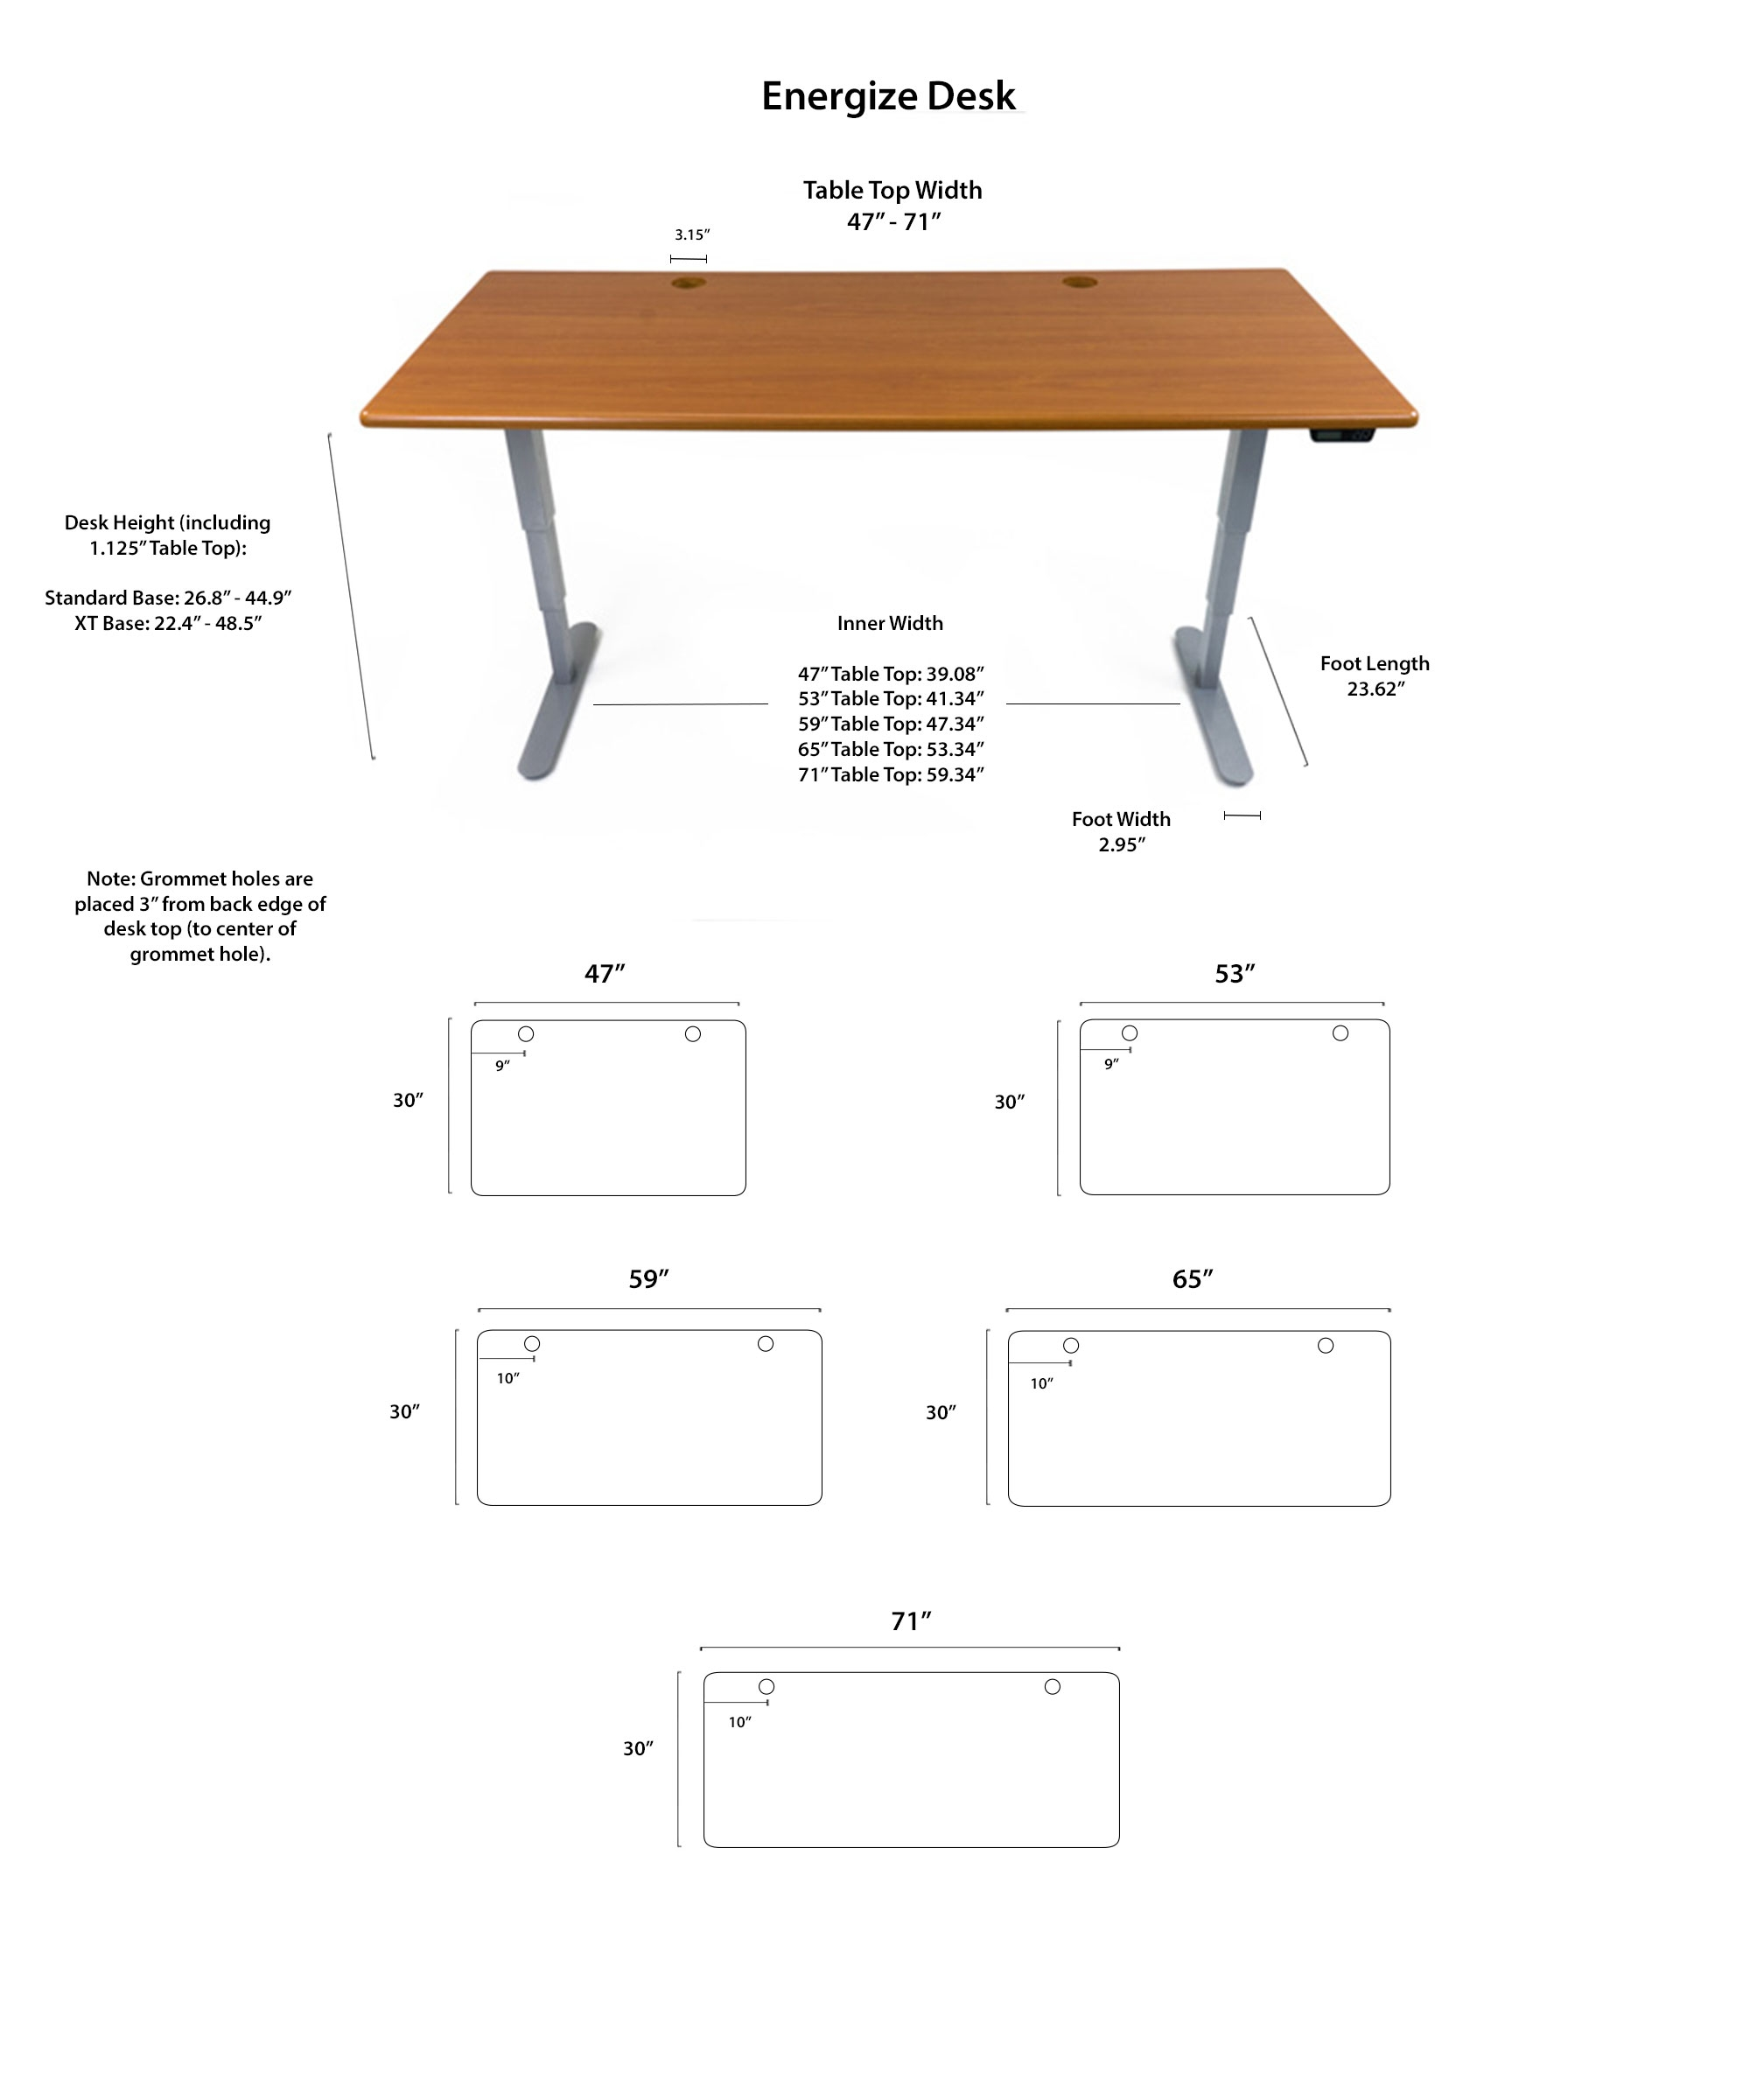 iMovR Energize Standing Desk Diagrams